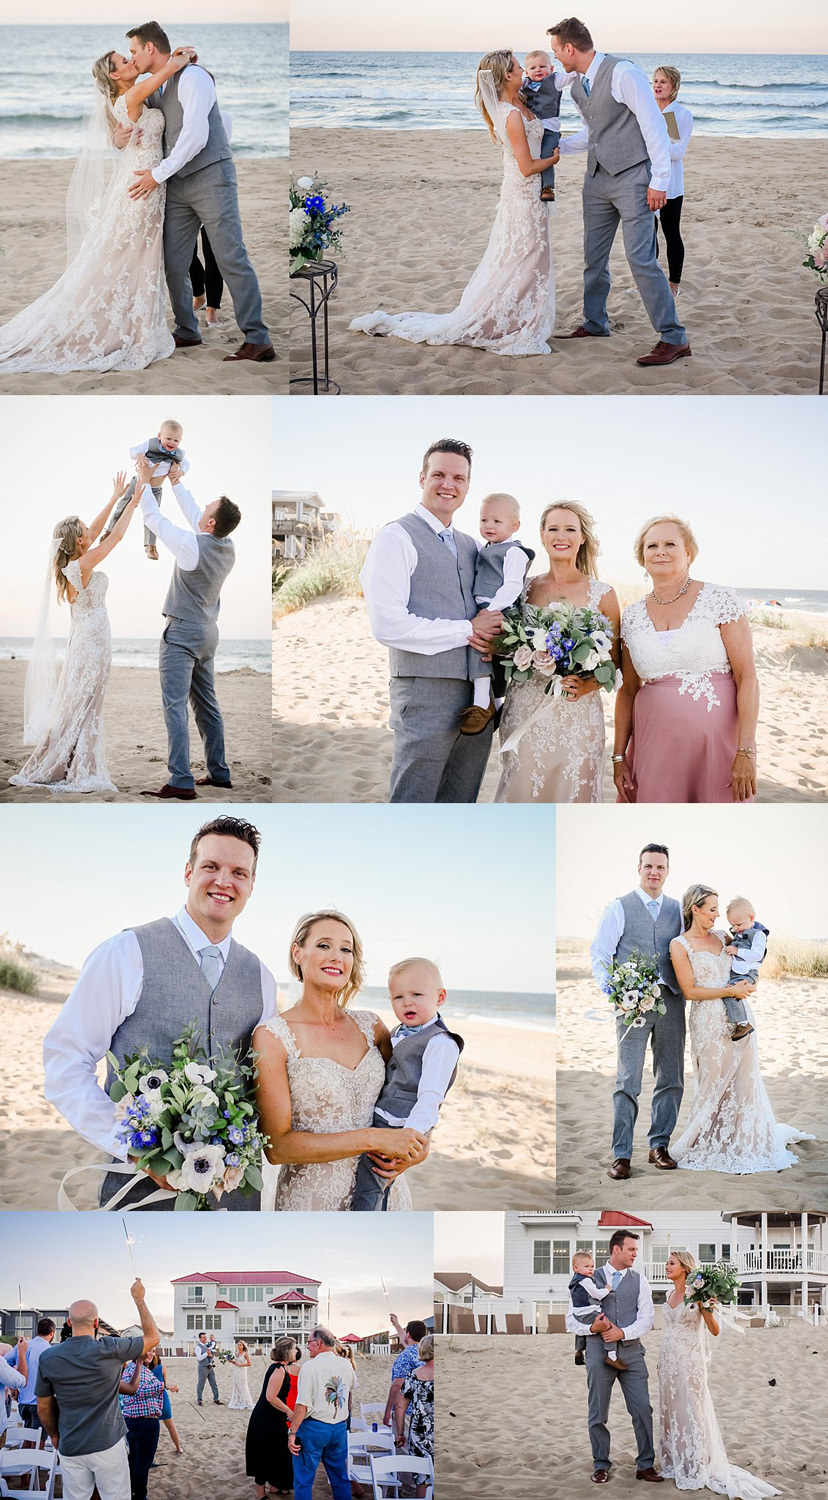 destination-beach-weddings-sandbridge-virginia-beach-wedding-photos-melissa-bliss-photography.jpg